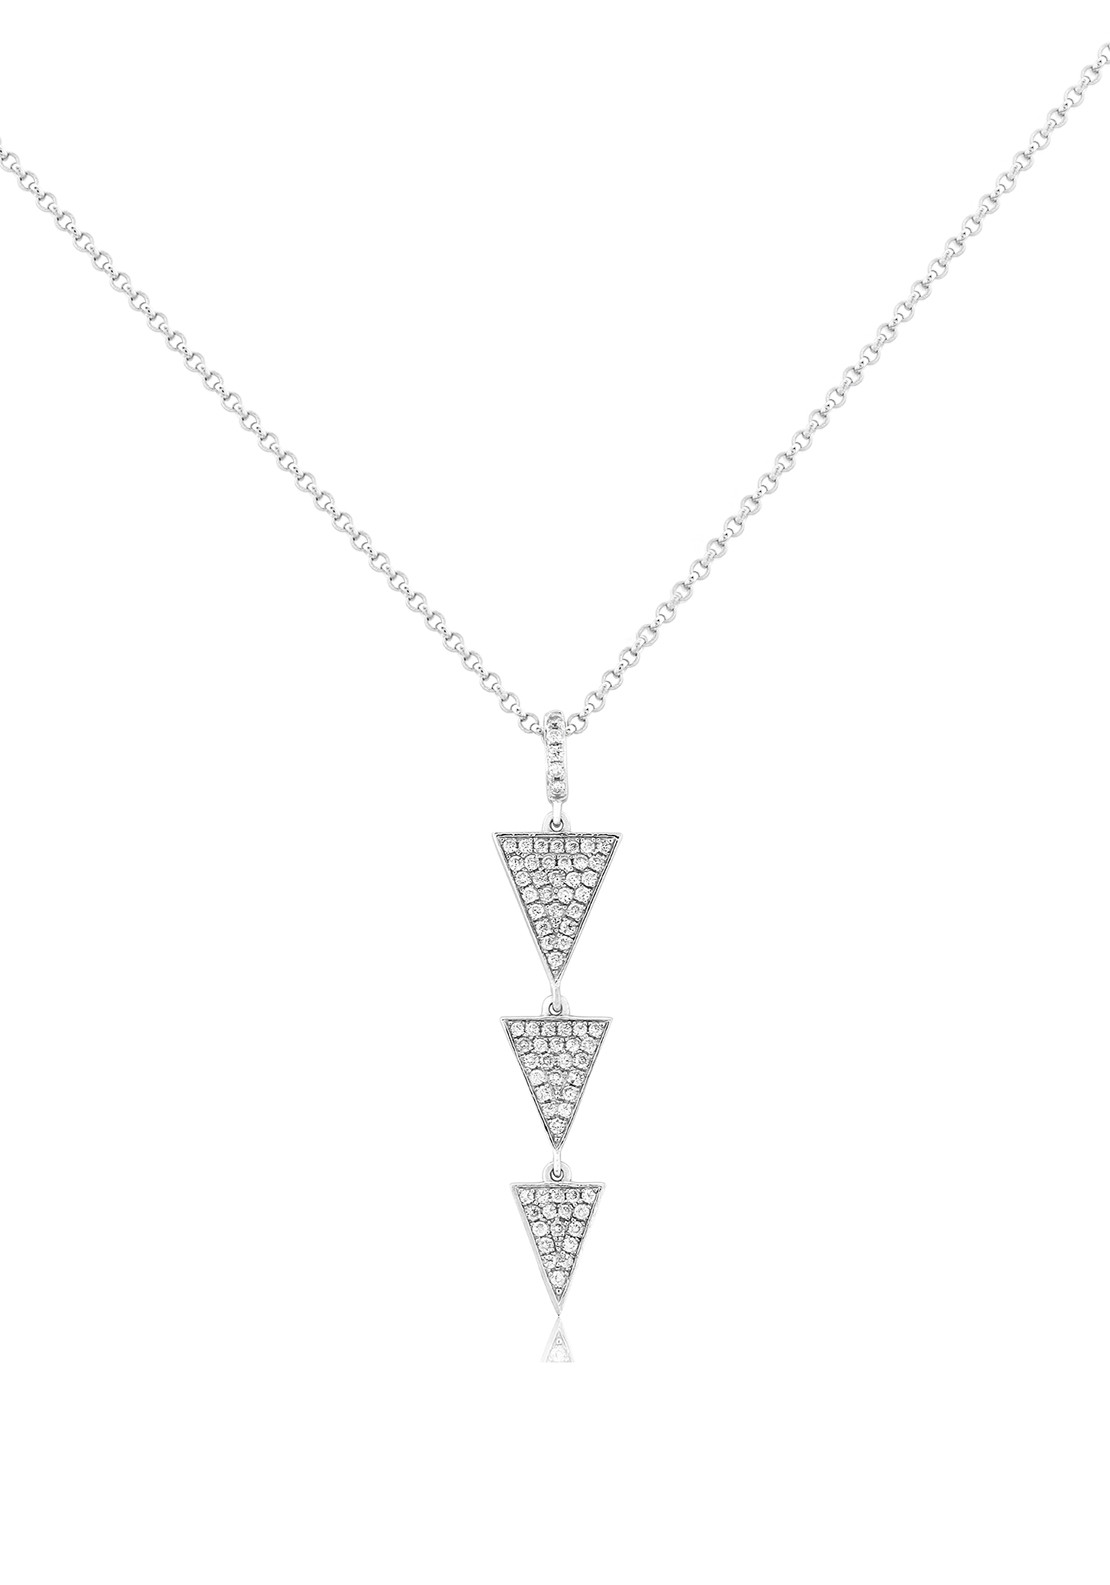 Waterford Crystal Triangular Pendant Necklace, Silver